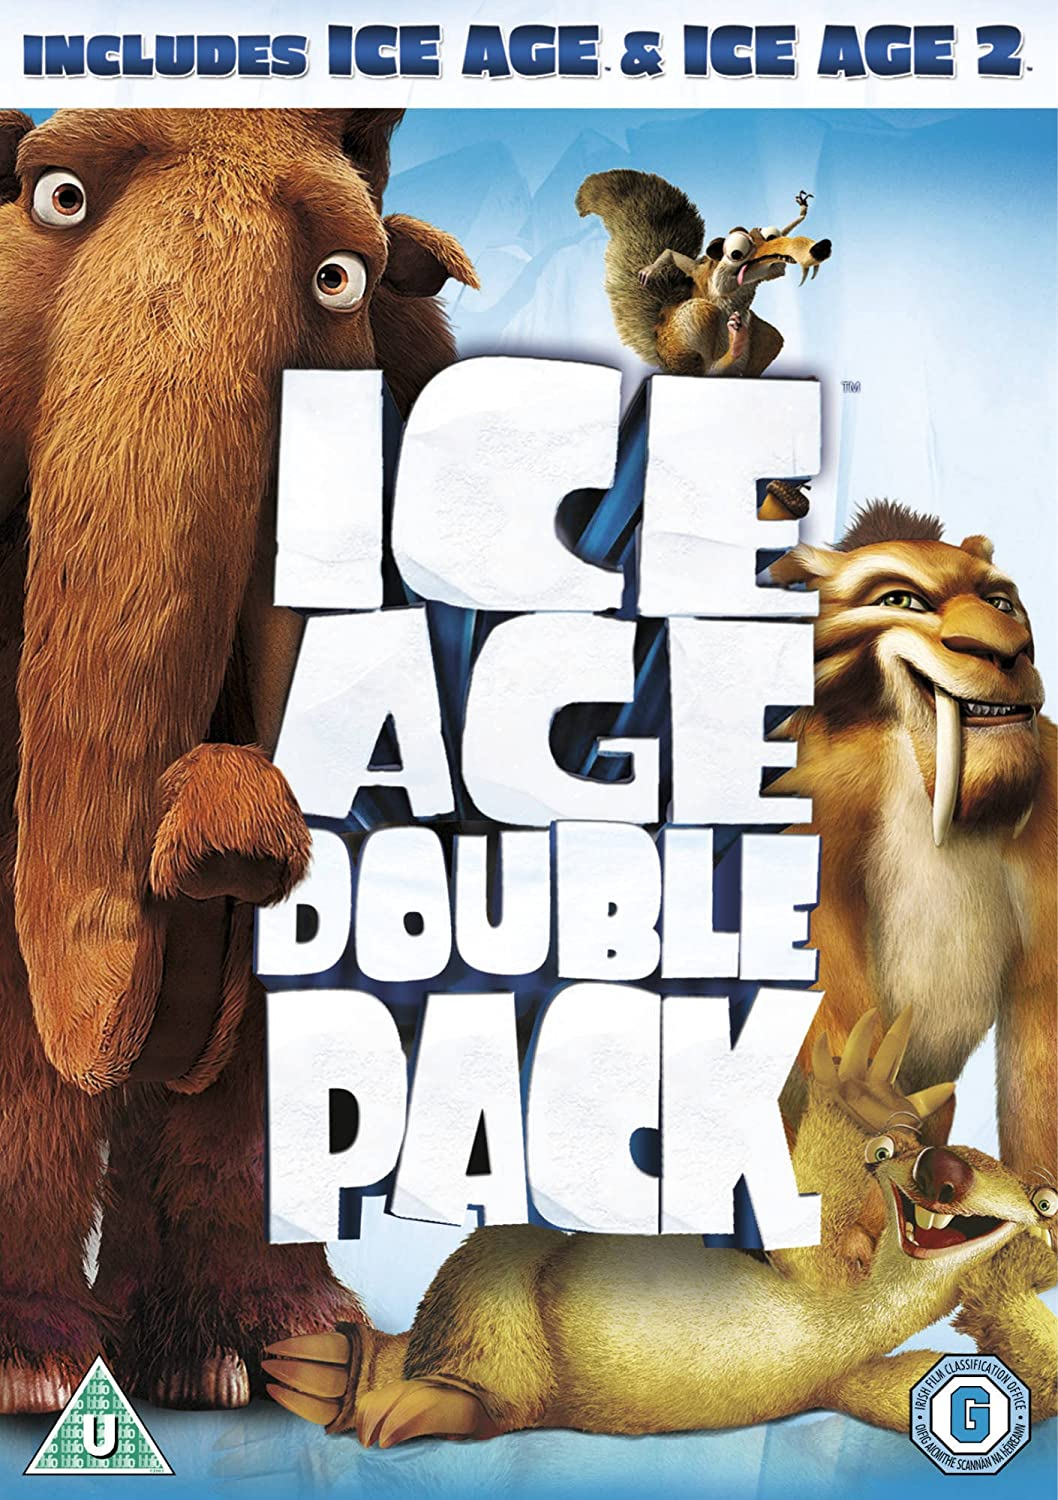 Ice Age / Ice Age 2: The Meltdown Double Pack DVD 2002: Amazon.co.uk ...